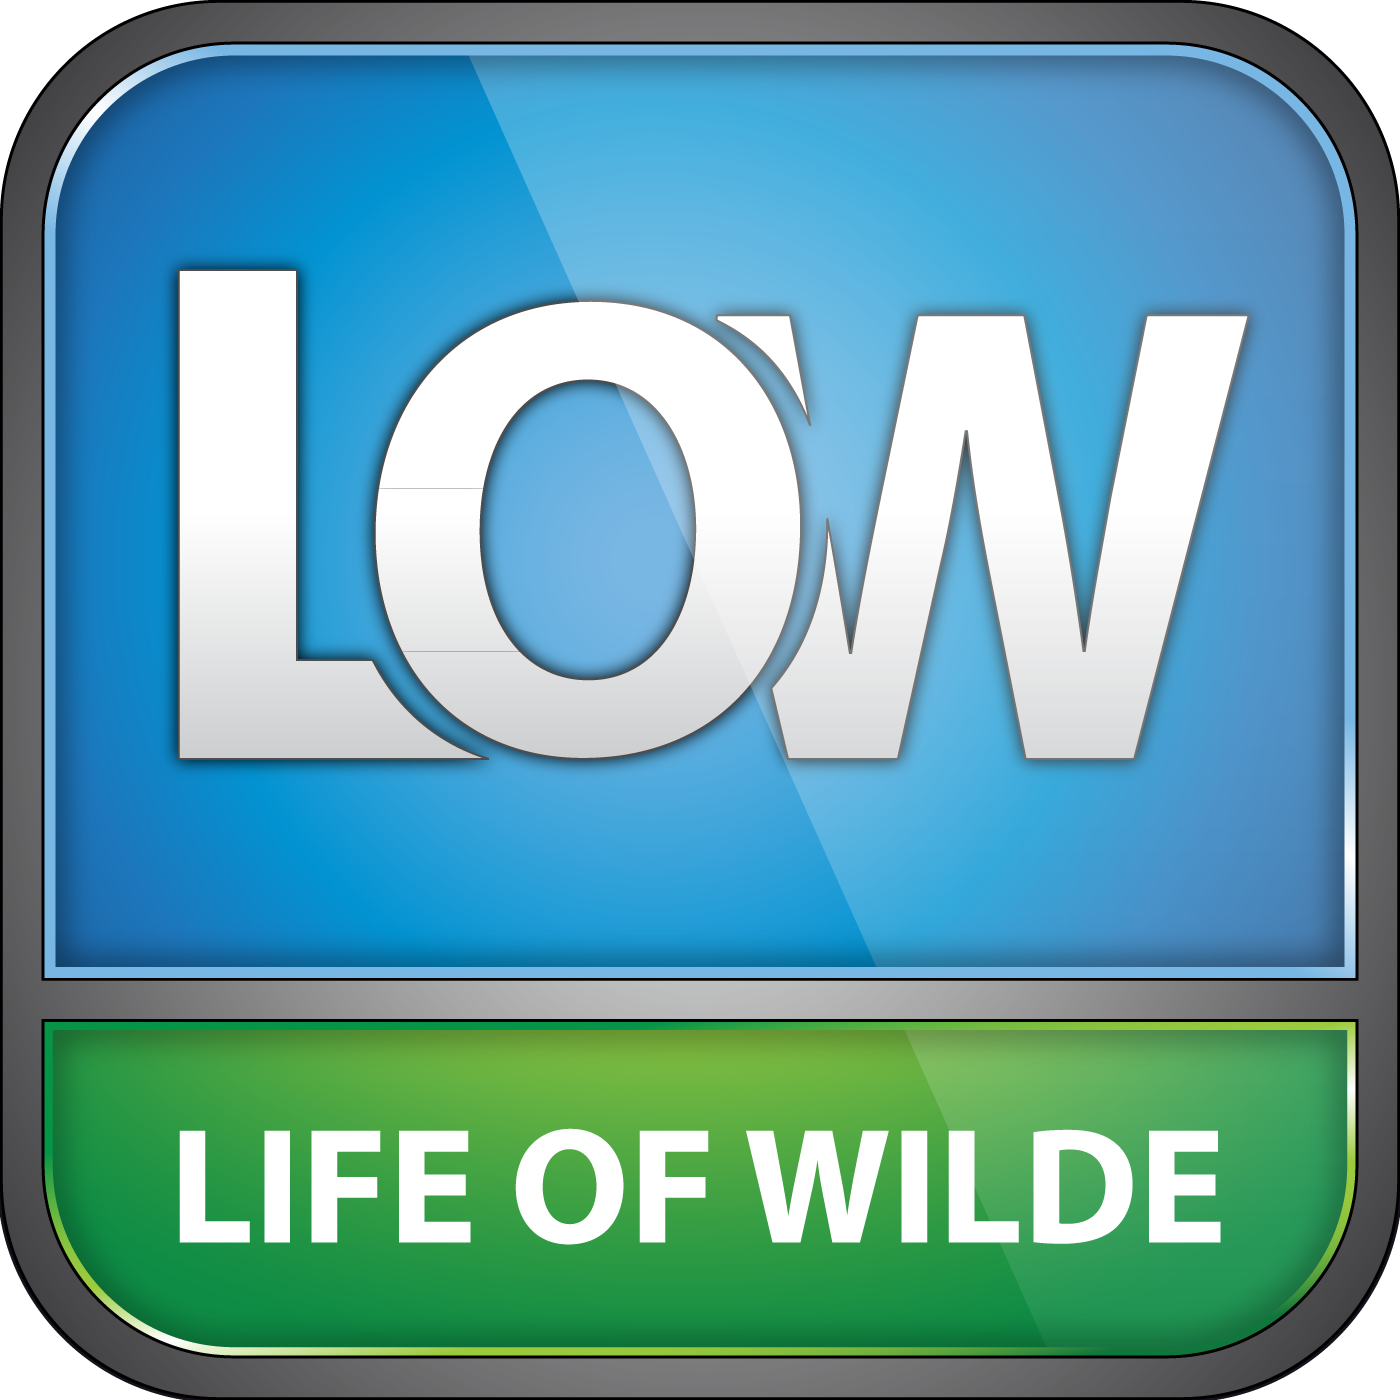 LIFEOFWILDE.COM (LOW)